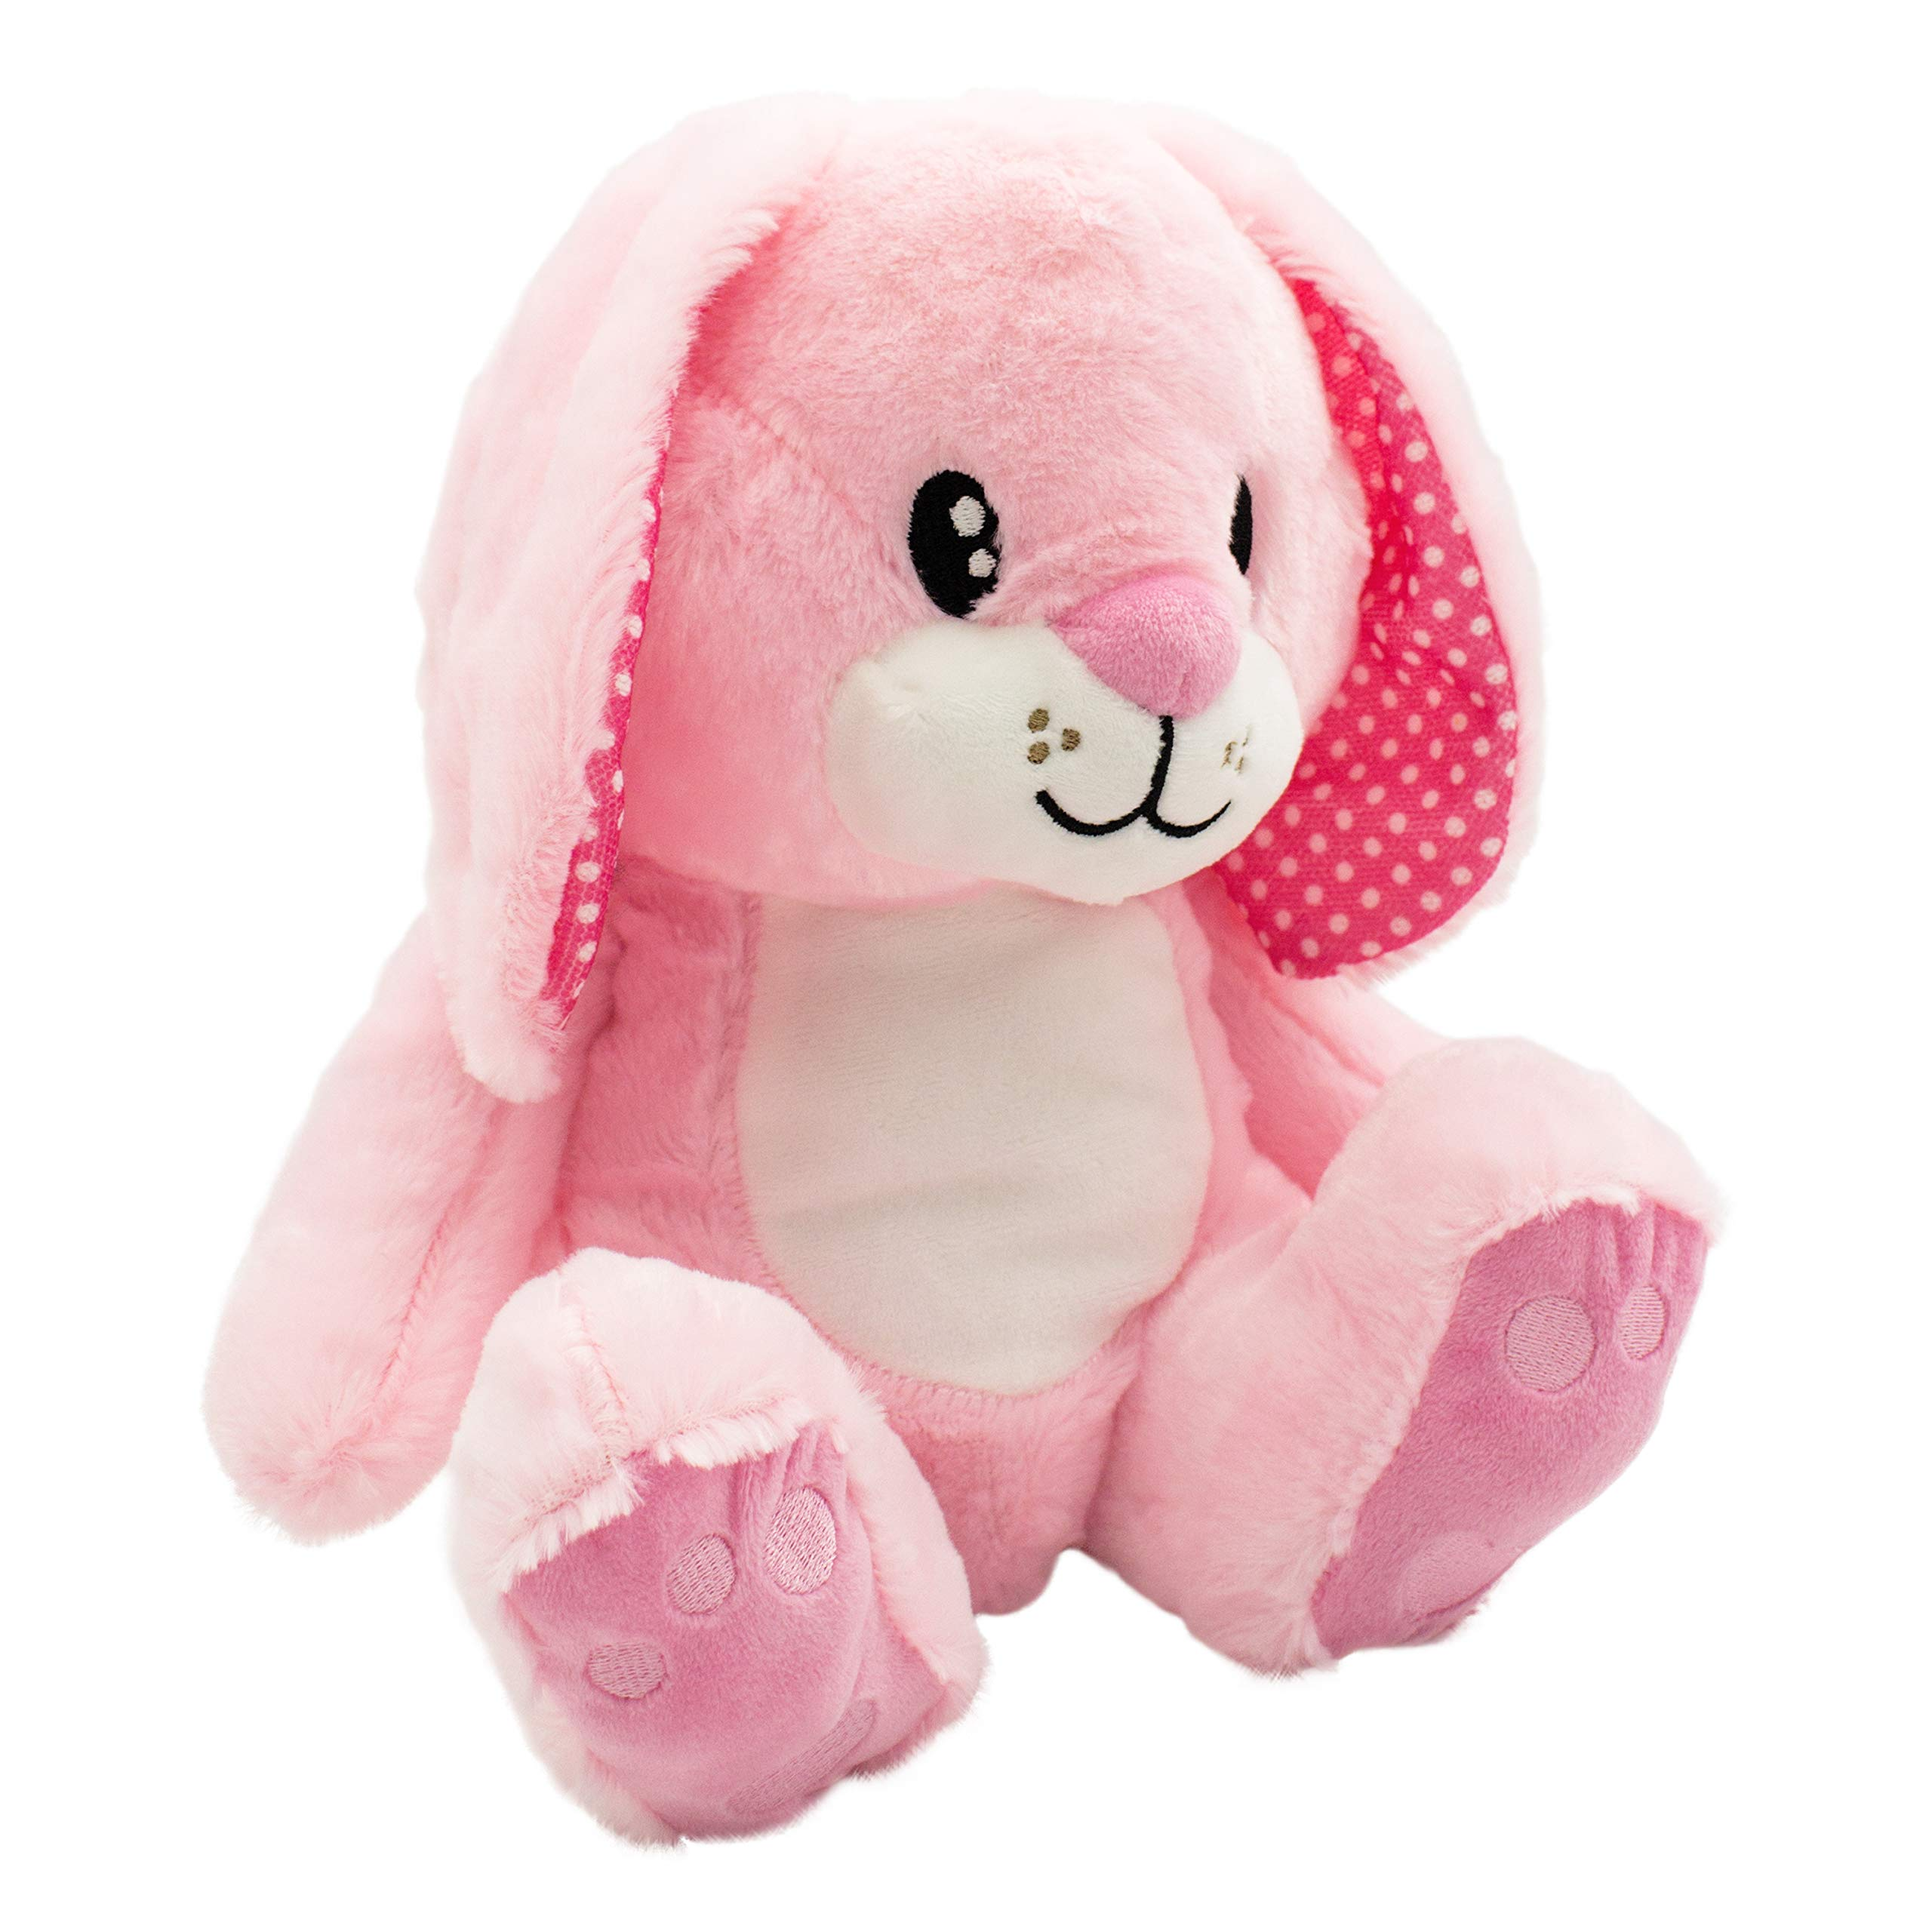 """Scentco Sunny Spring Bunny - Scented Stuffed Animal Gift, 10"""" (Strawberry)"""